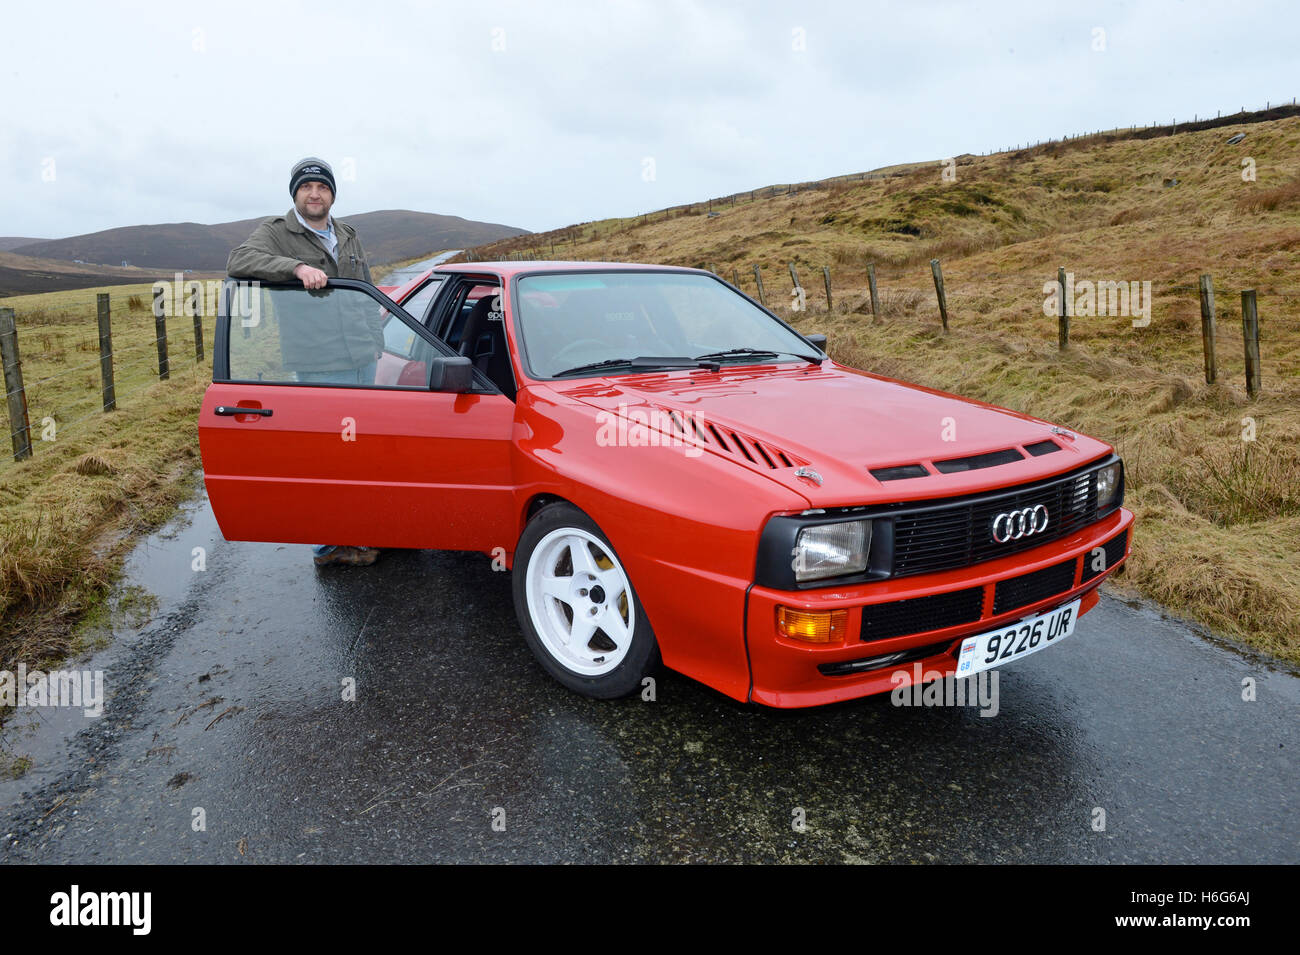 classic audi quattro rally car 2 door version stock photo, royalty